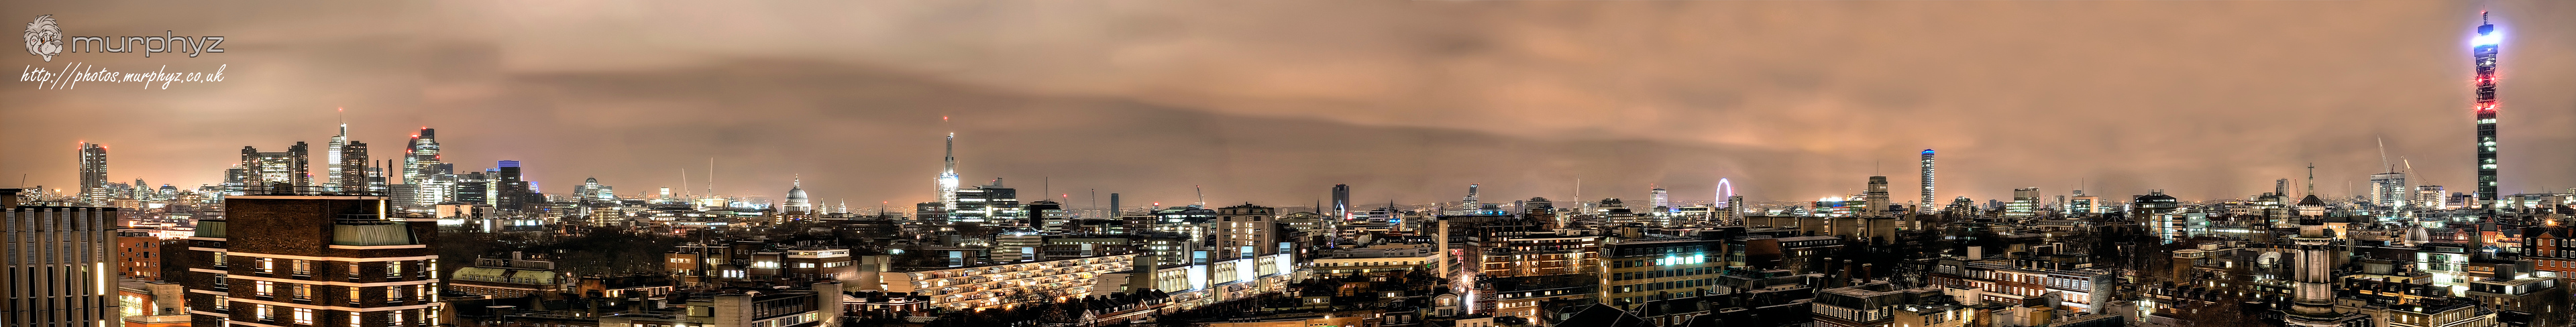 London Panoramic. 13 images stitched together.    From left to right the landscape includes iconic buildings such as the Barbican, Gherkin, St Paul's Cathedral, the Shard (mid construction), the Brunswick Centre, the OXO tower, Strata Tower, Senate House, Centrepoint and the BT Tower.